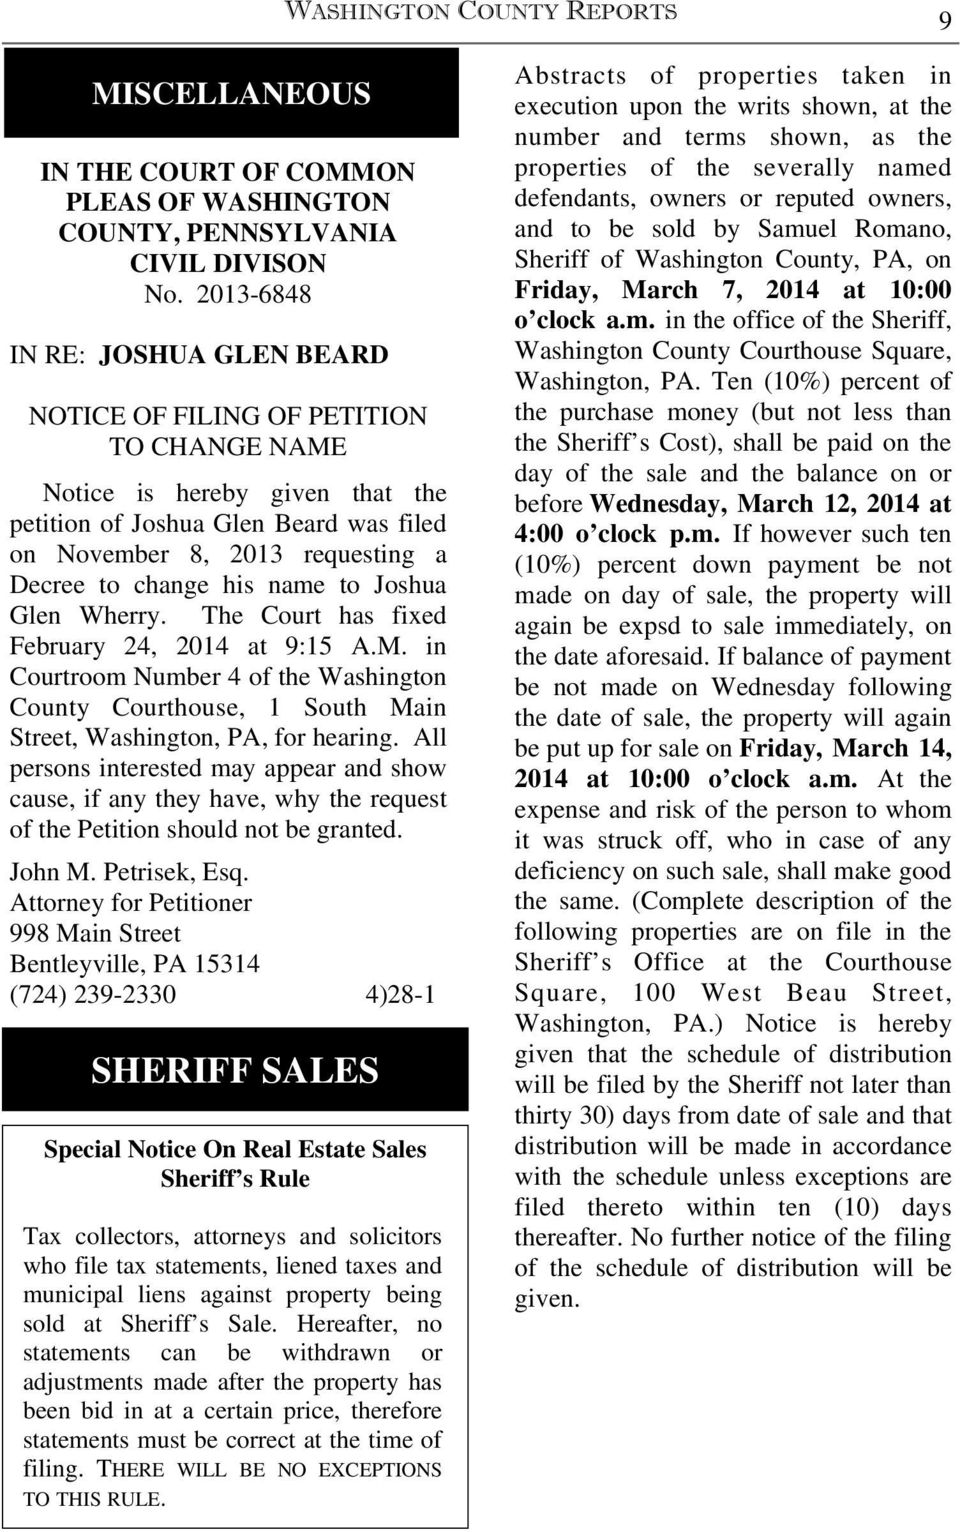 ESTATE NOTICES FIRST PUBLICATION WASHINGTON COUNTY REPORTS 5 - PDF